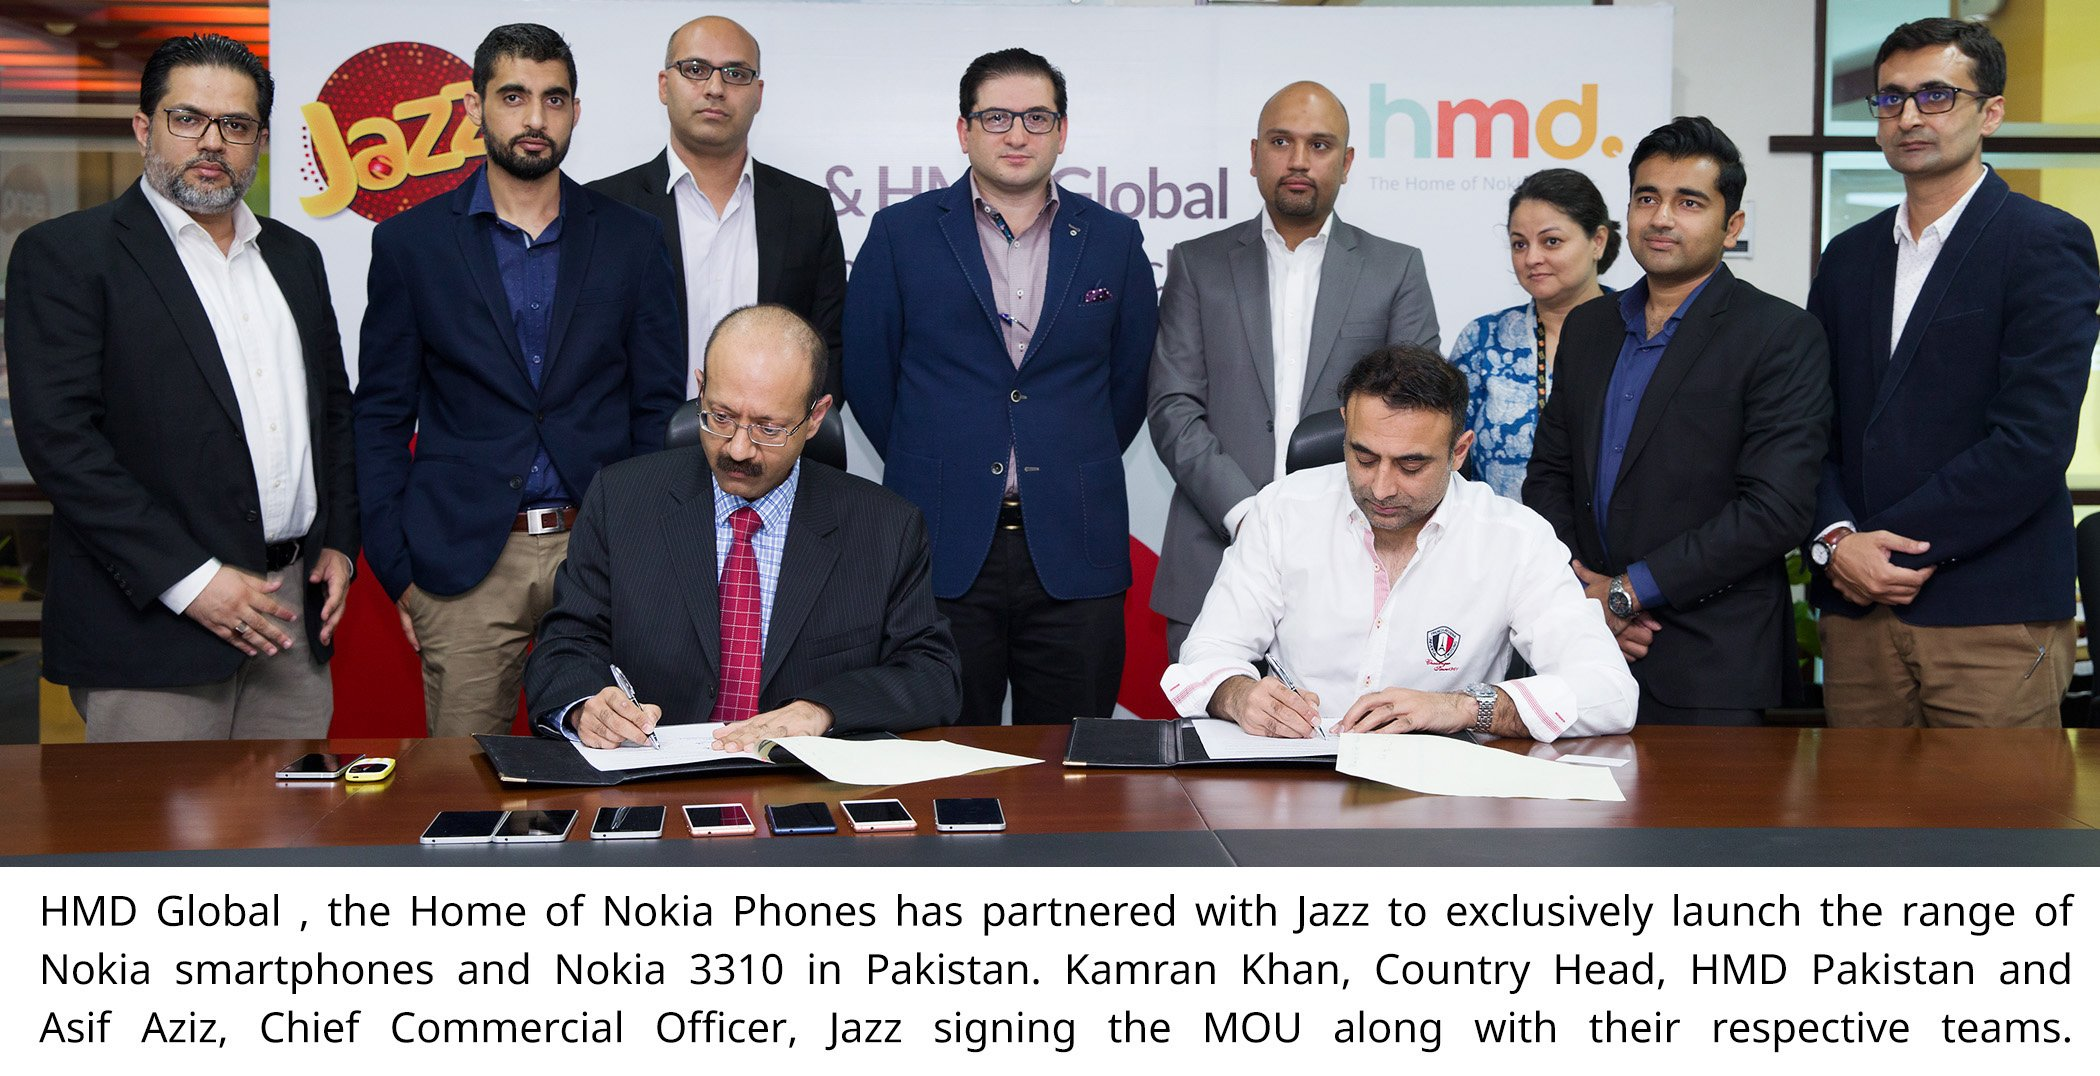 HMD Global, the home of Nokia phones, has partnered with Jazz to exclusively launch the range of Nokia smartphones and Nokia 3310 in Pakistan.